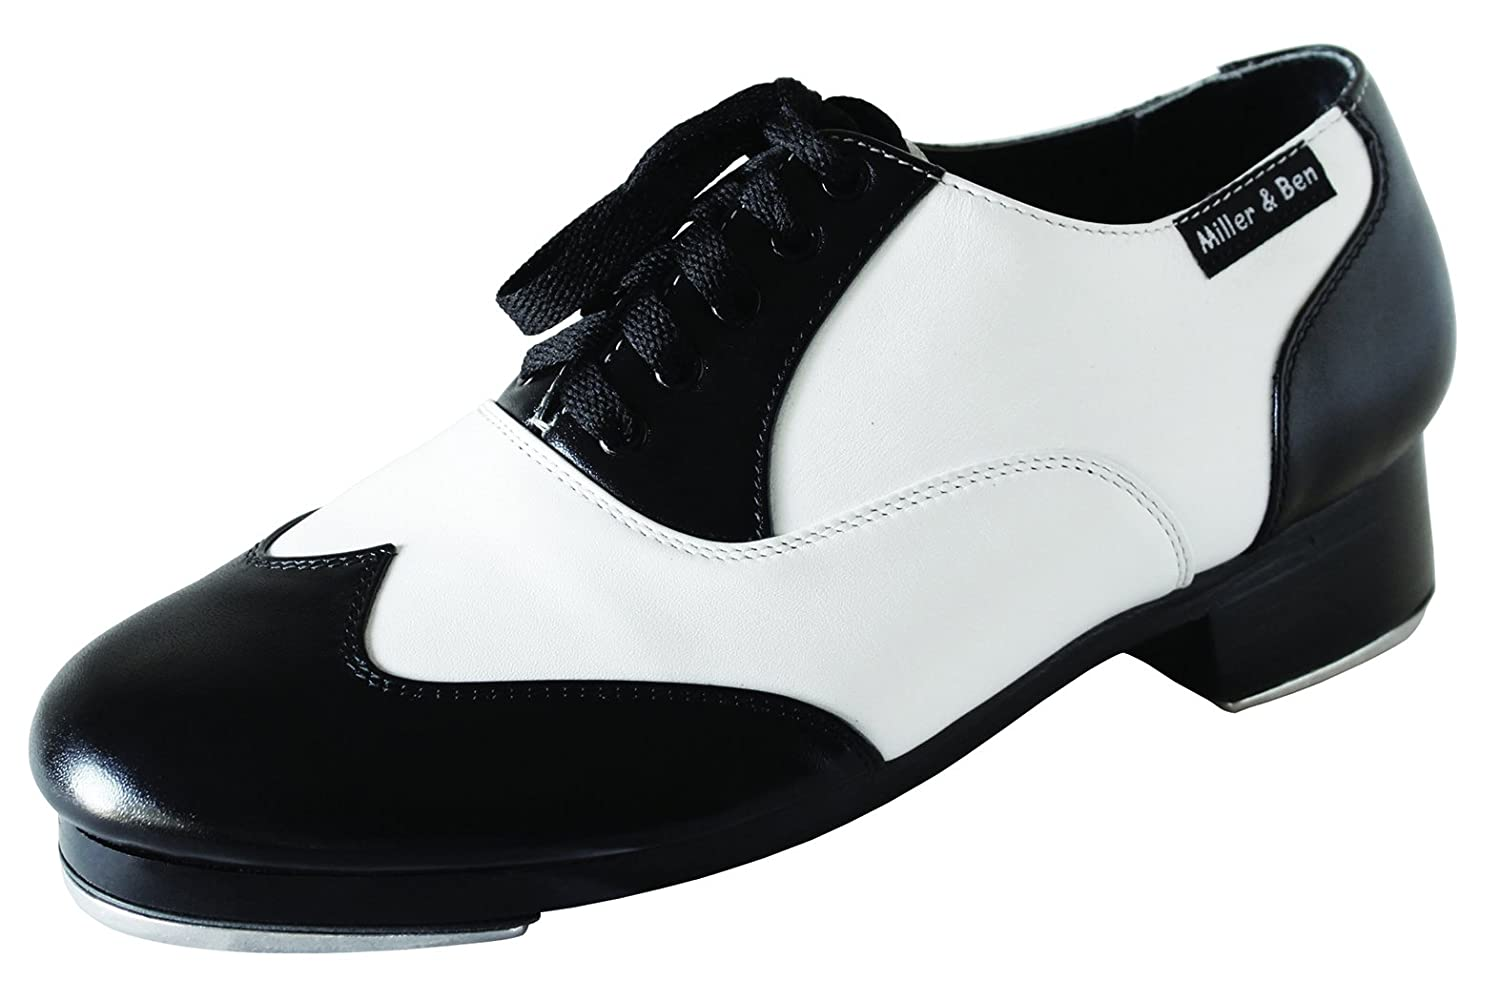 Vintage Dance Shoes- Where to Buy Them Miller & Ben Tap Shoes Jazz-Tap Master Black & White - STANDARD SIZES $285.00 AT vintagedancer.com